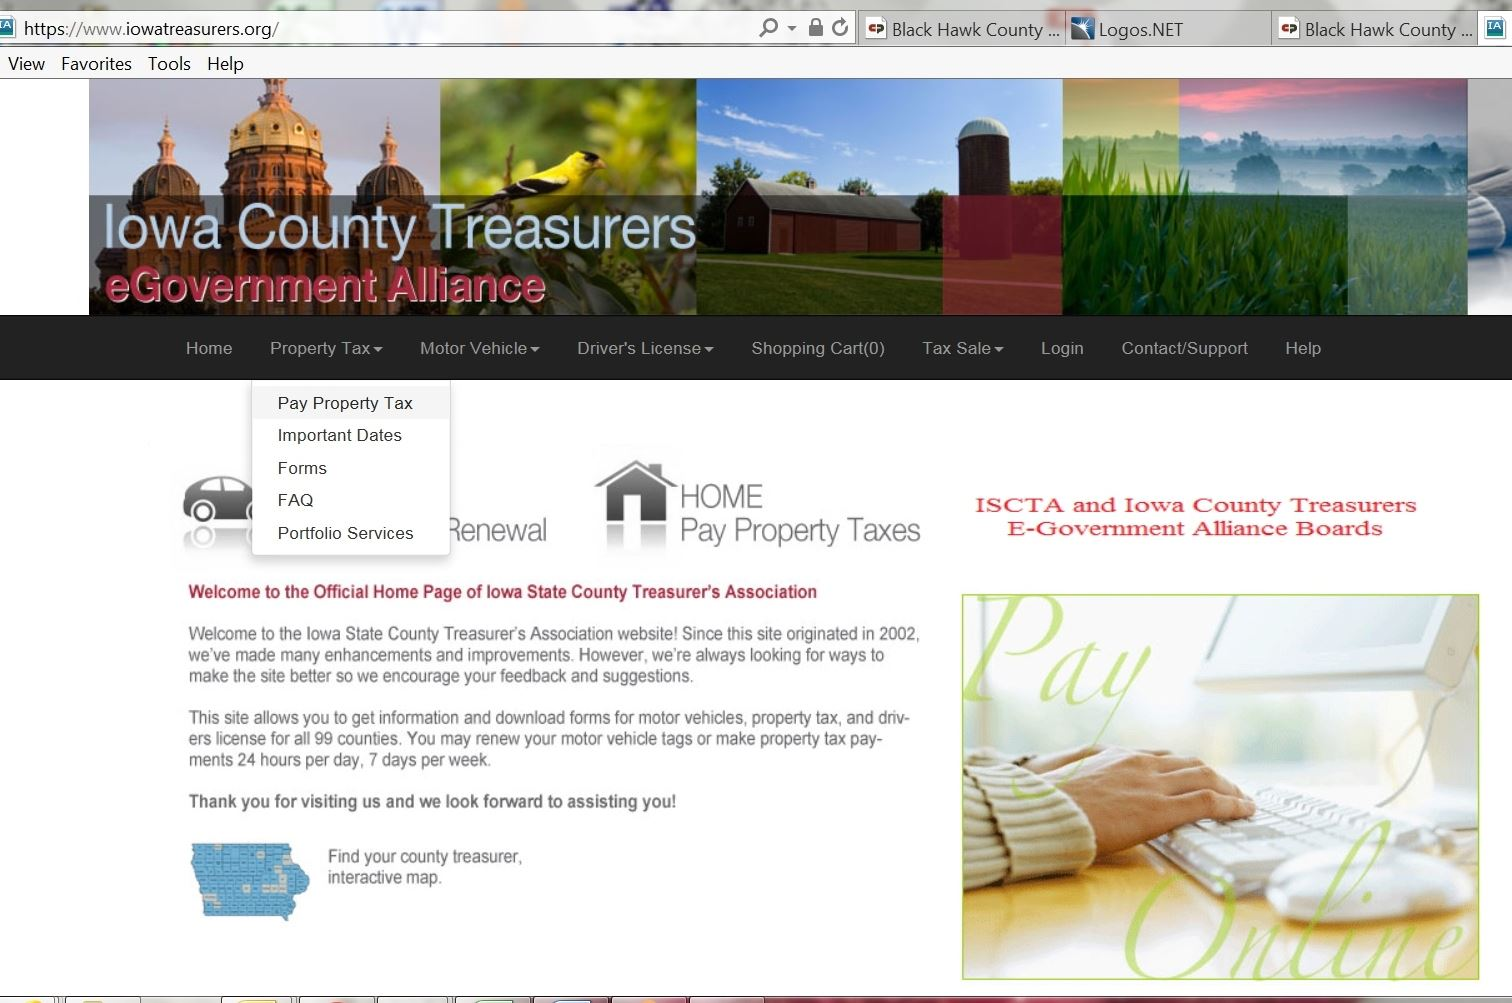 Copy of home page of Iowa Treasurer's website